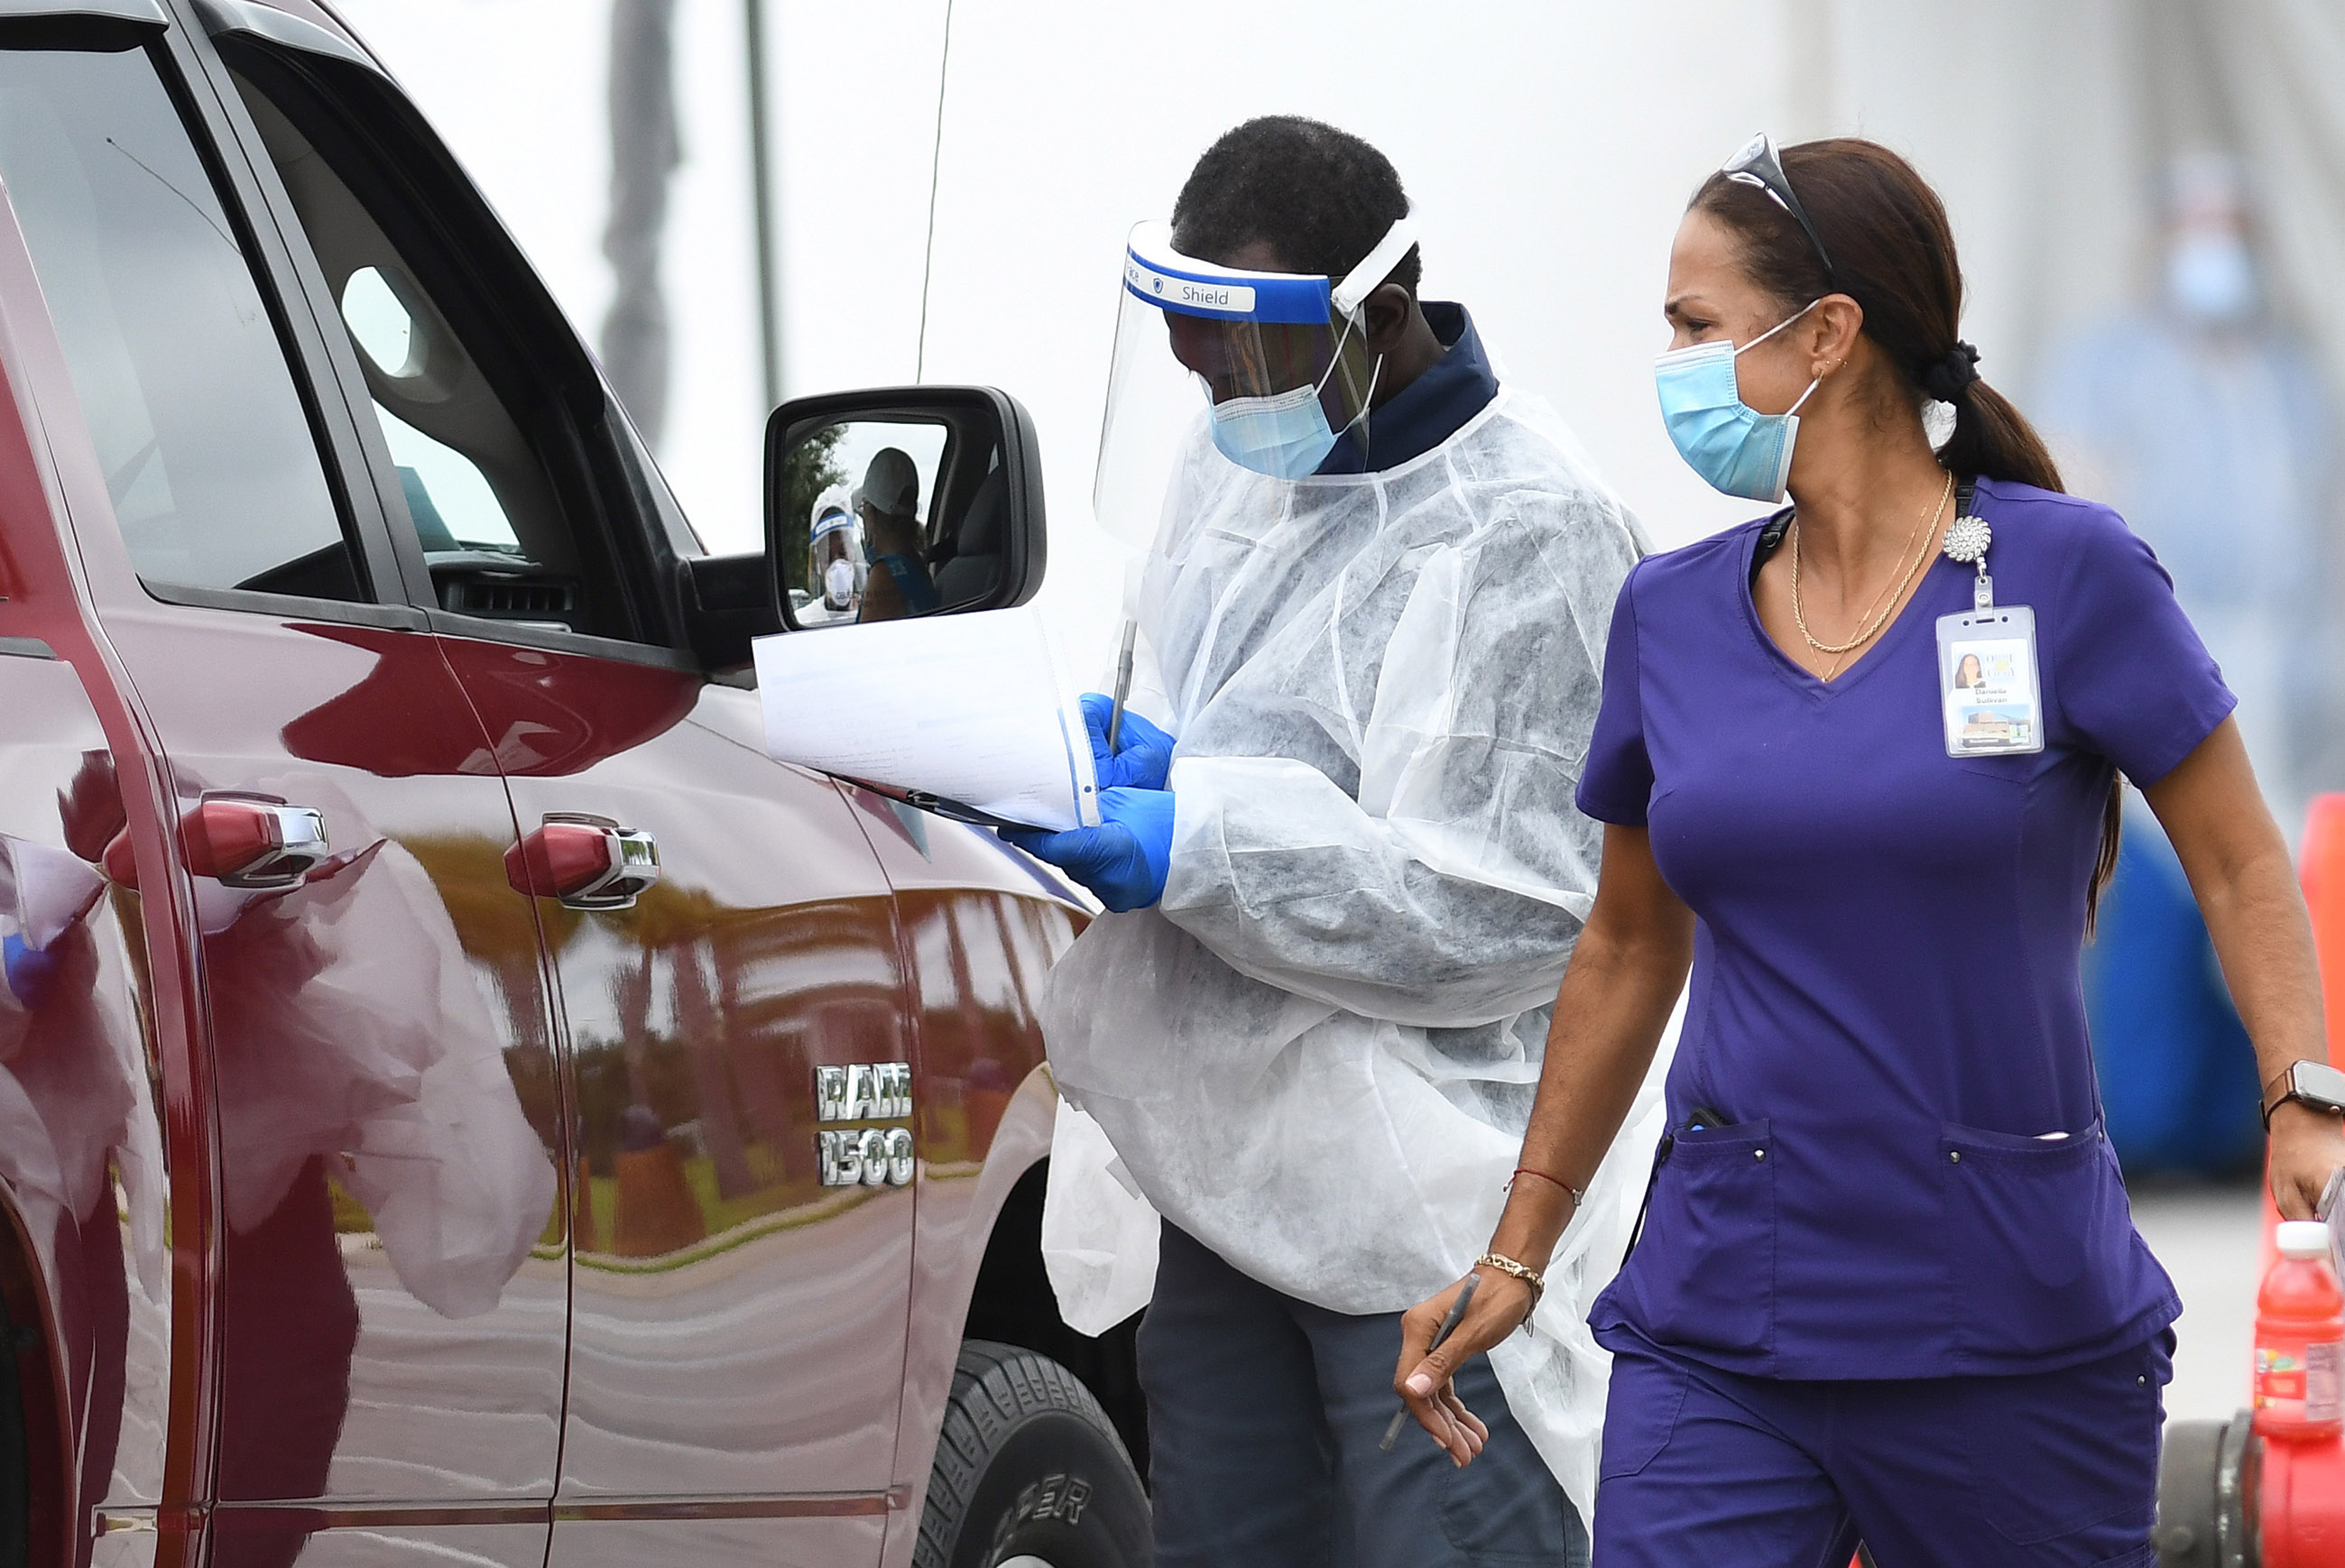 Health care workers operate a drive-through Covid-19 testing site at East Orange District Park on October 1, in Orlando, Florida.